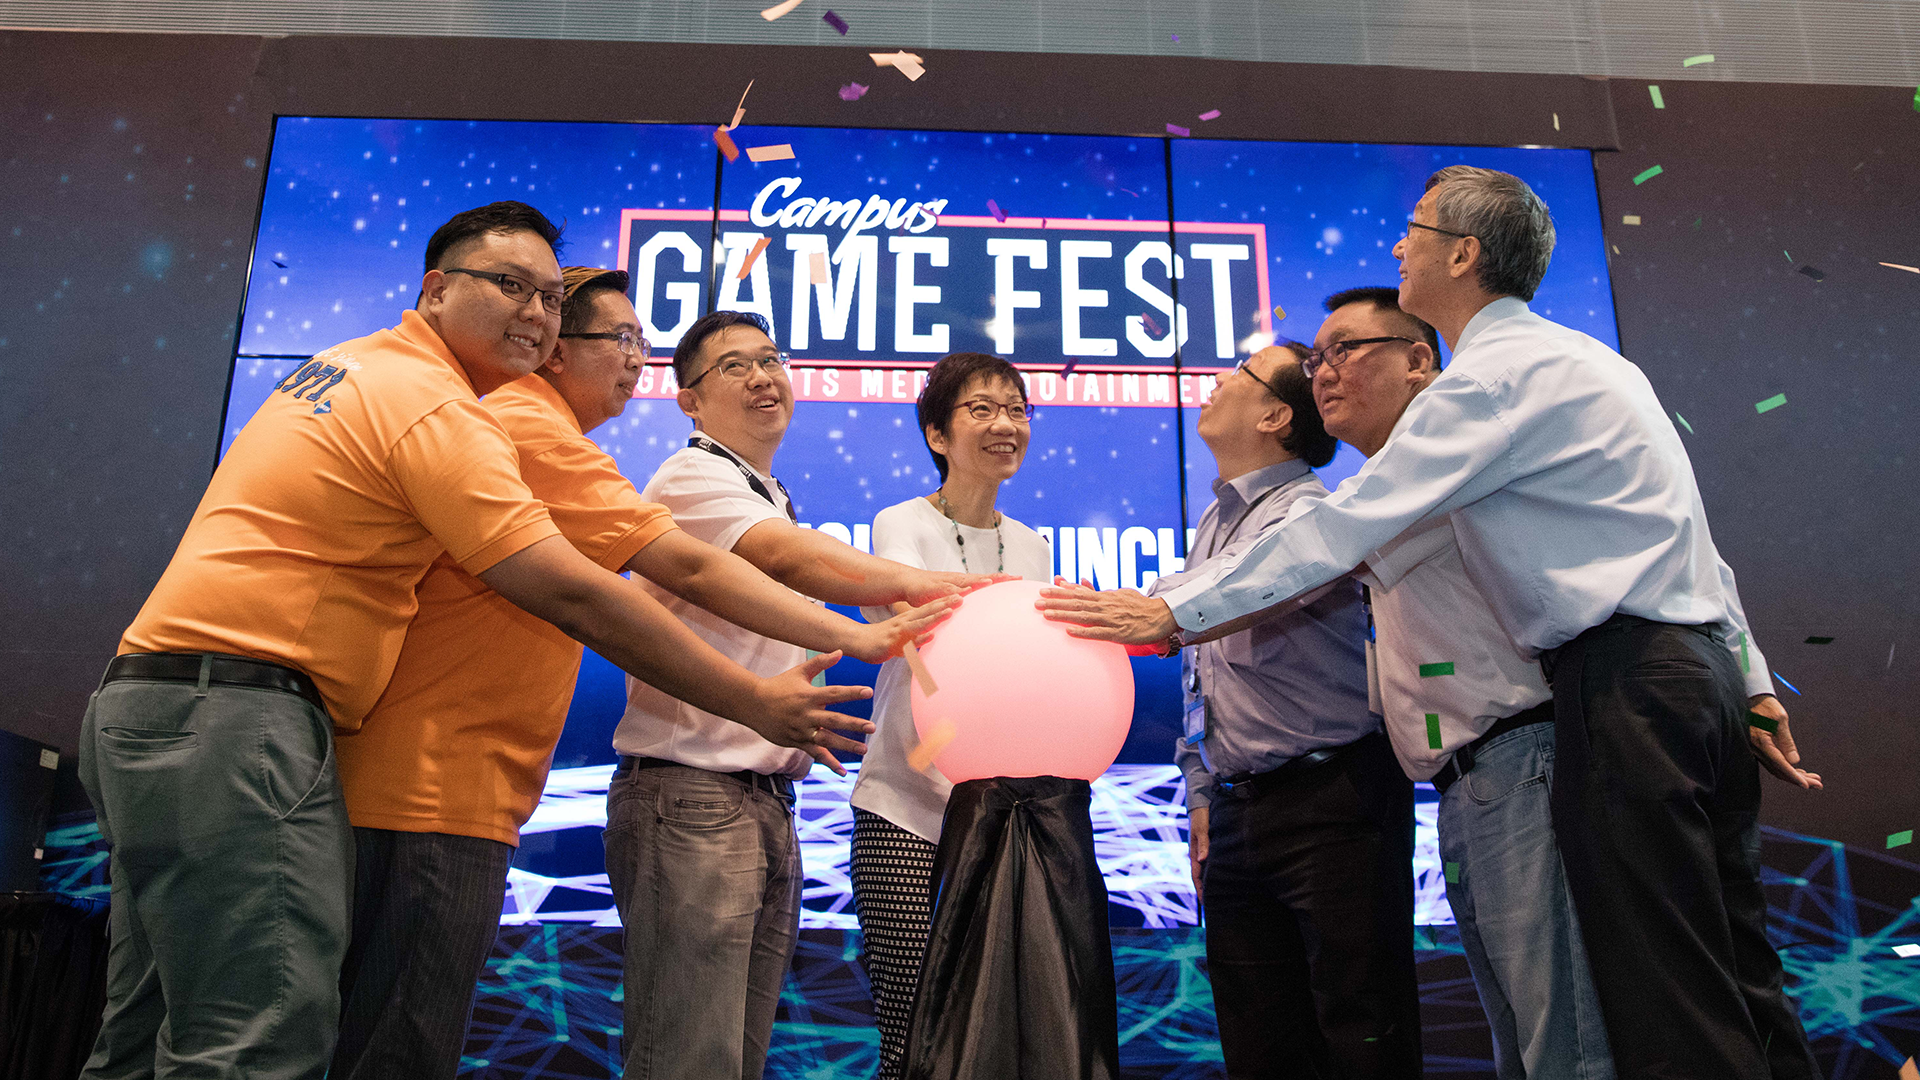 Campus Game Fest 2016 - Opening